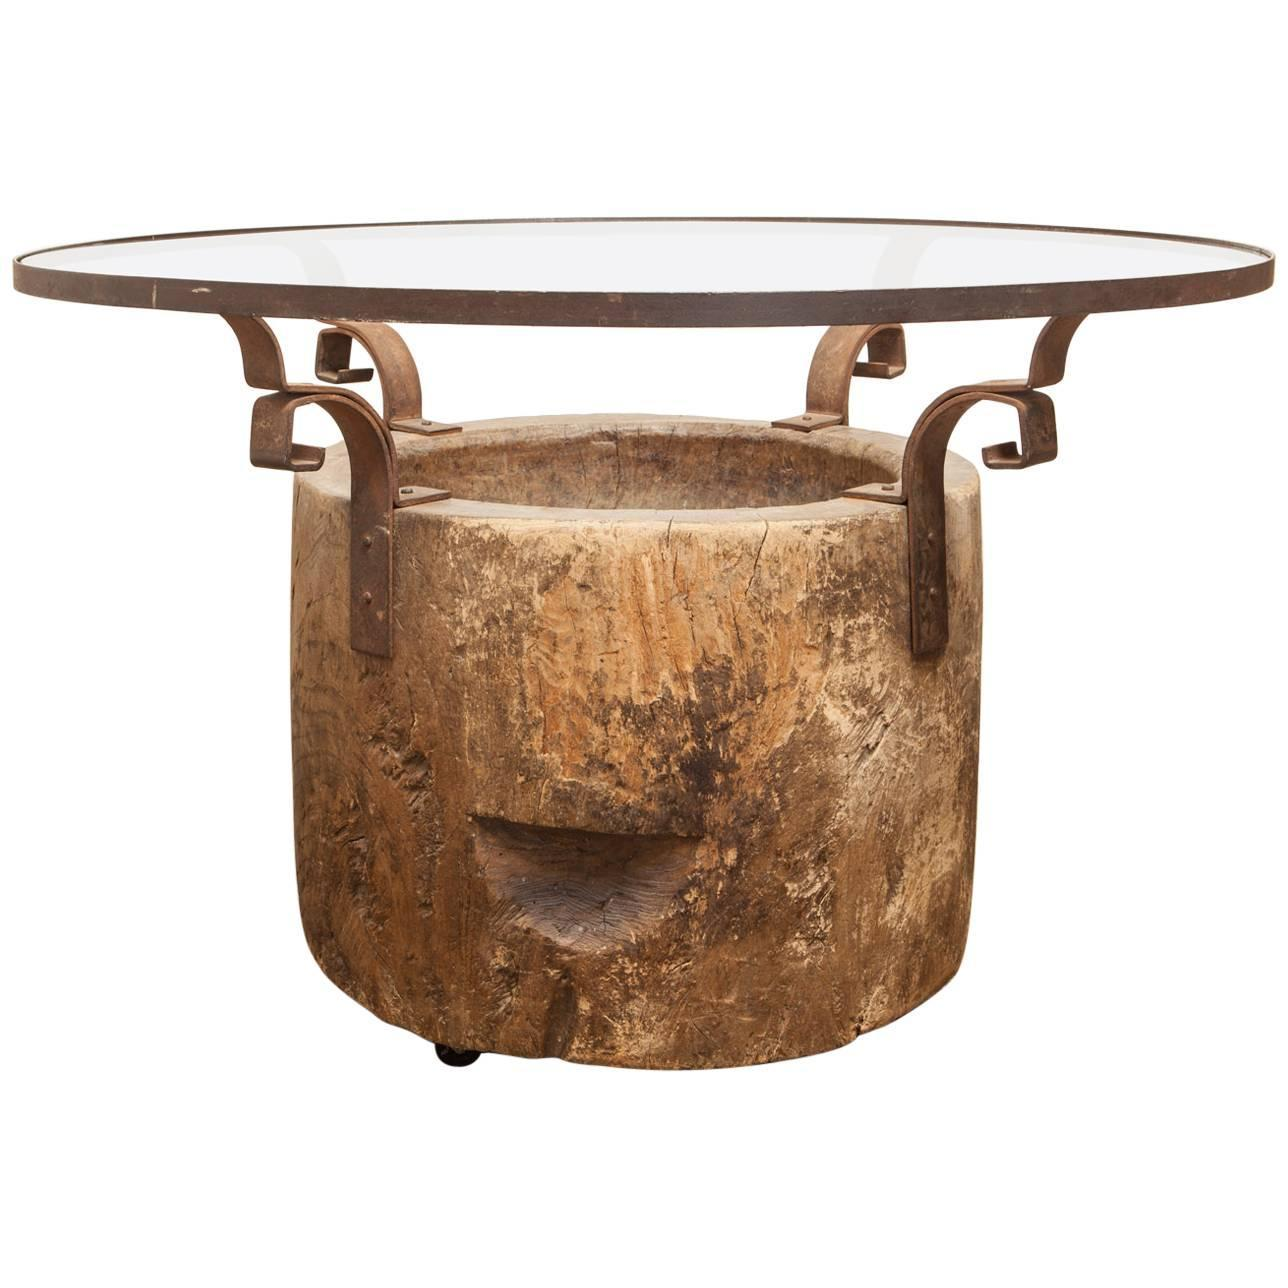 Michael taylor cyprus tree trunk dining table at 1stdibs - Organic Reclaimed Japanese Usu Tree Trunk Pedestal Dining Table